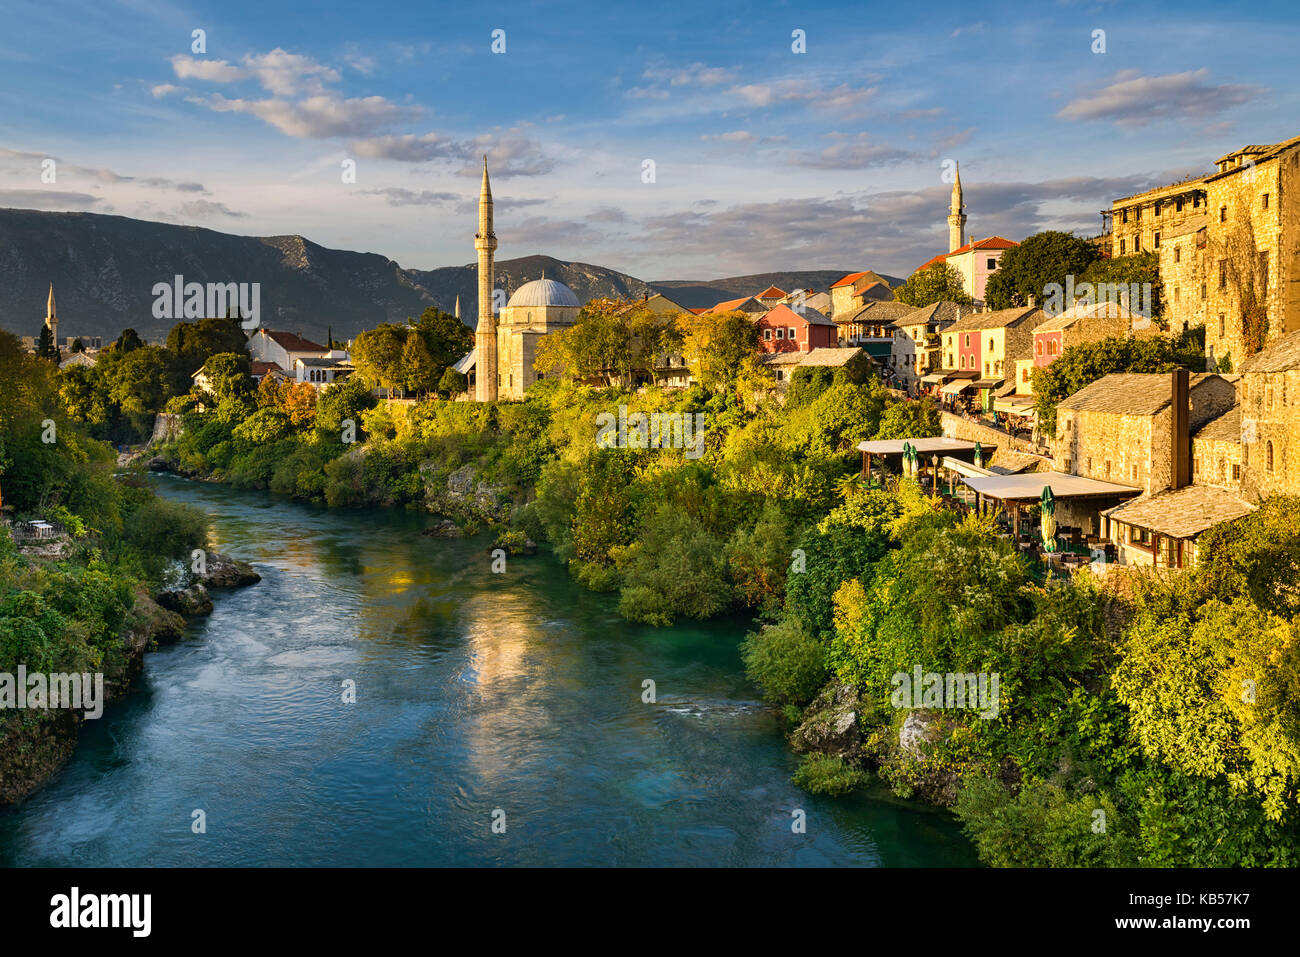 Old town of Mostar, Bosnia and Herzegovina - Stock Image